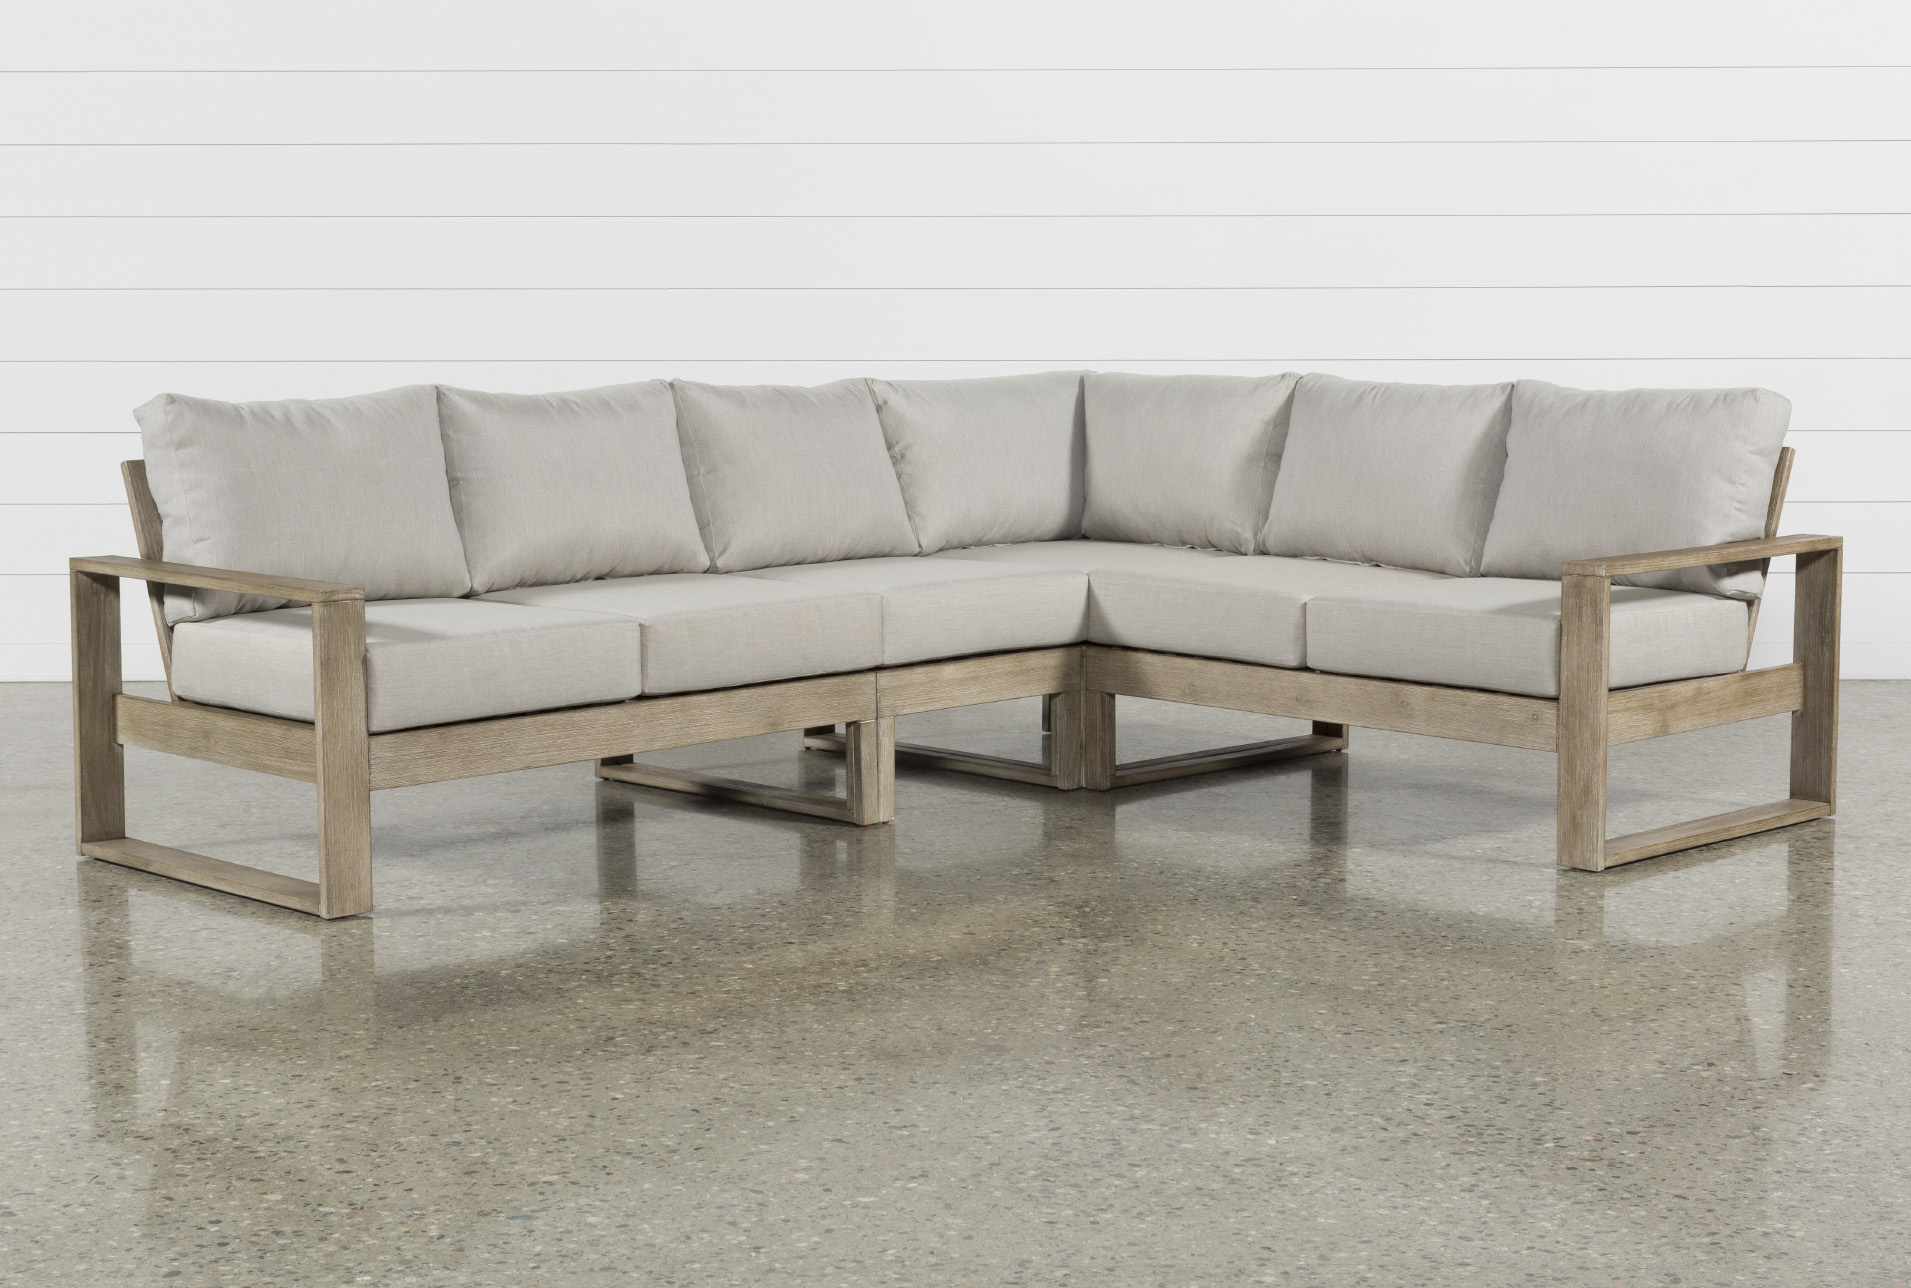 Malaga Outdoor 4 Piece Sectional   Living Spaces on Living Spaces Outdoor Sectional id=62353